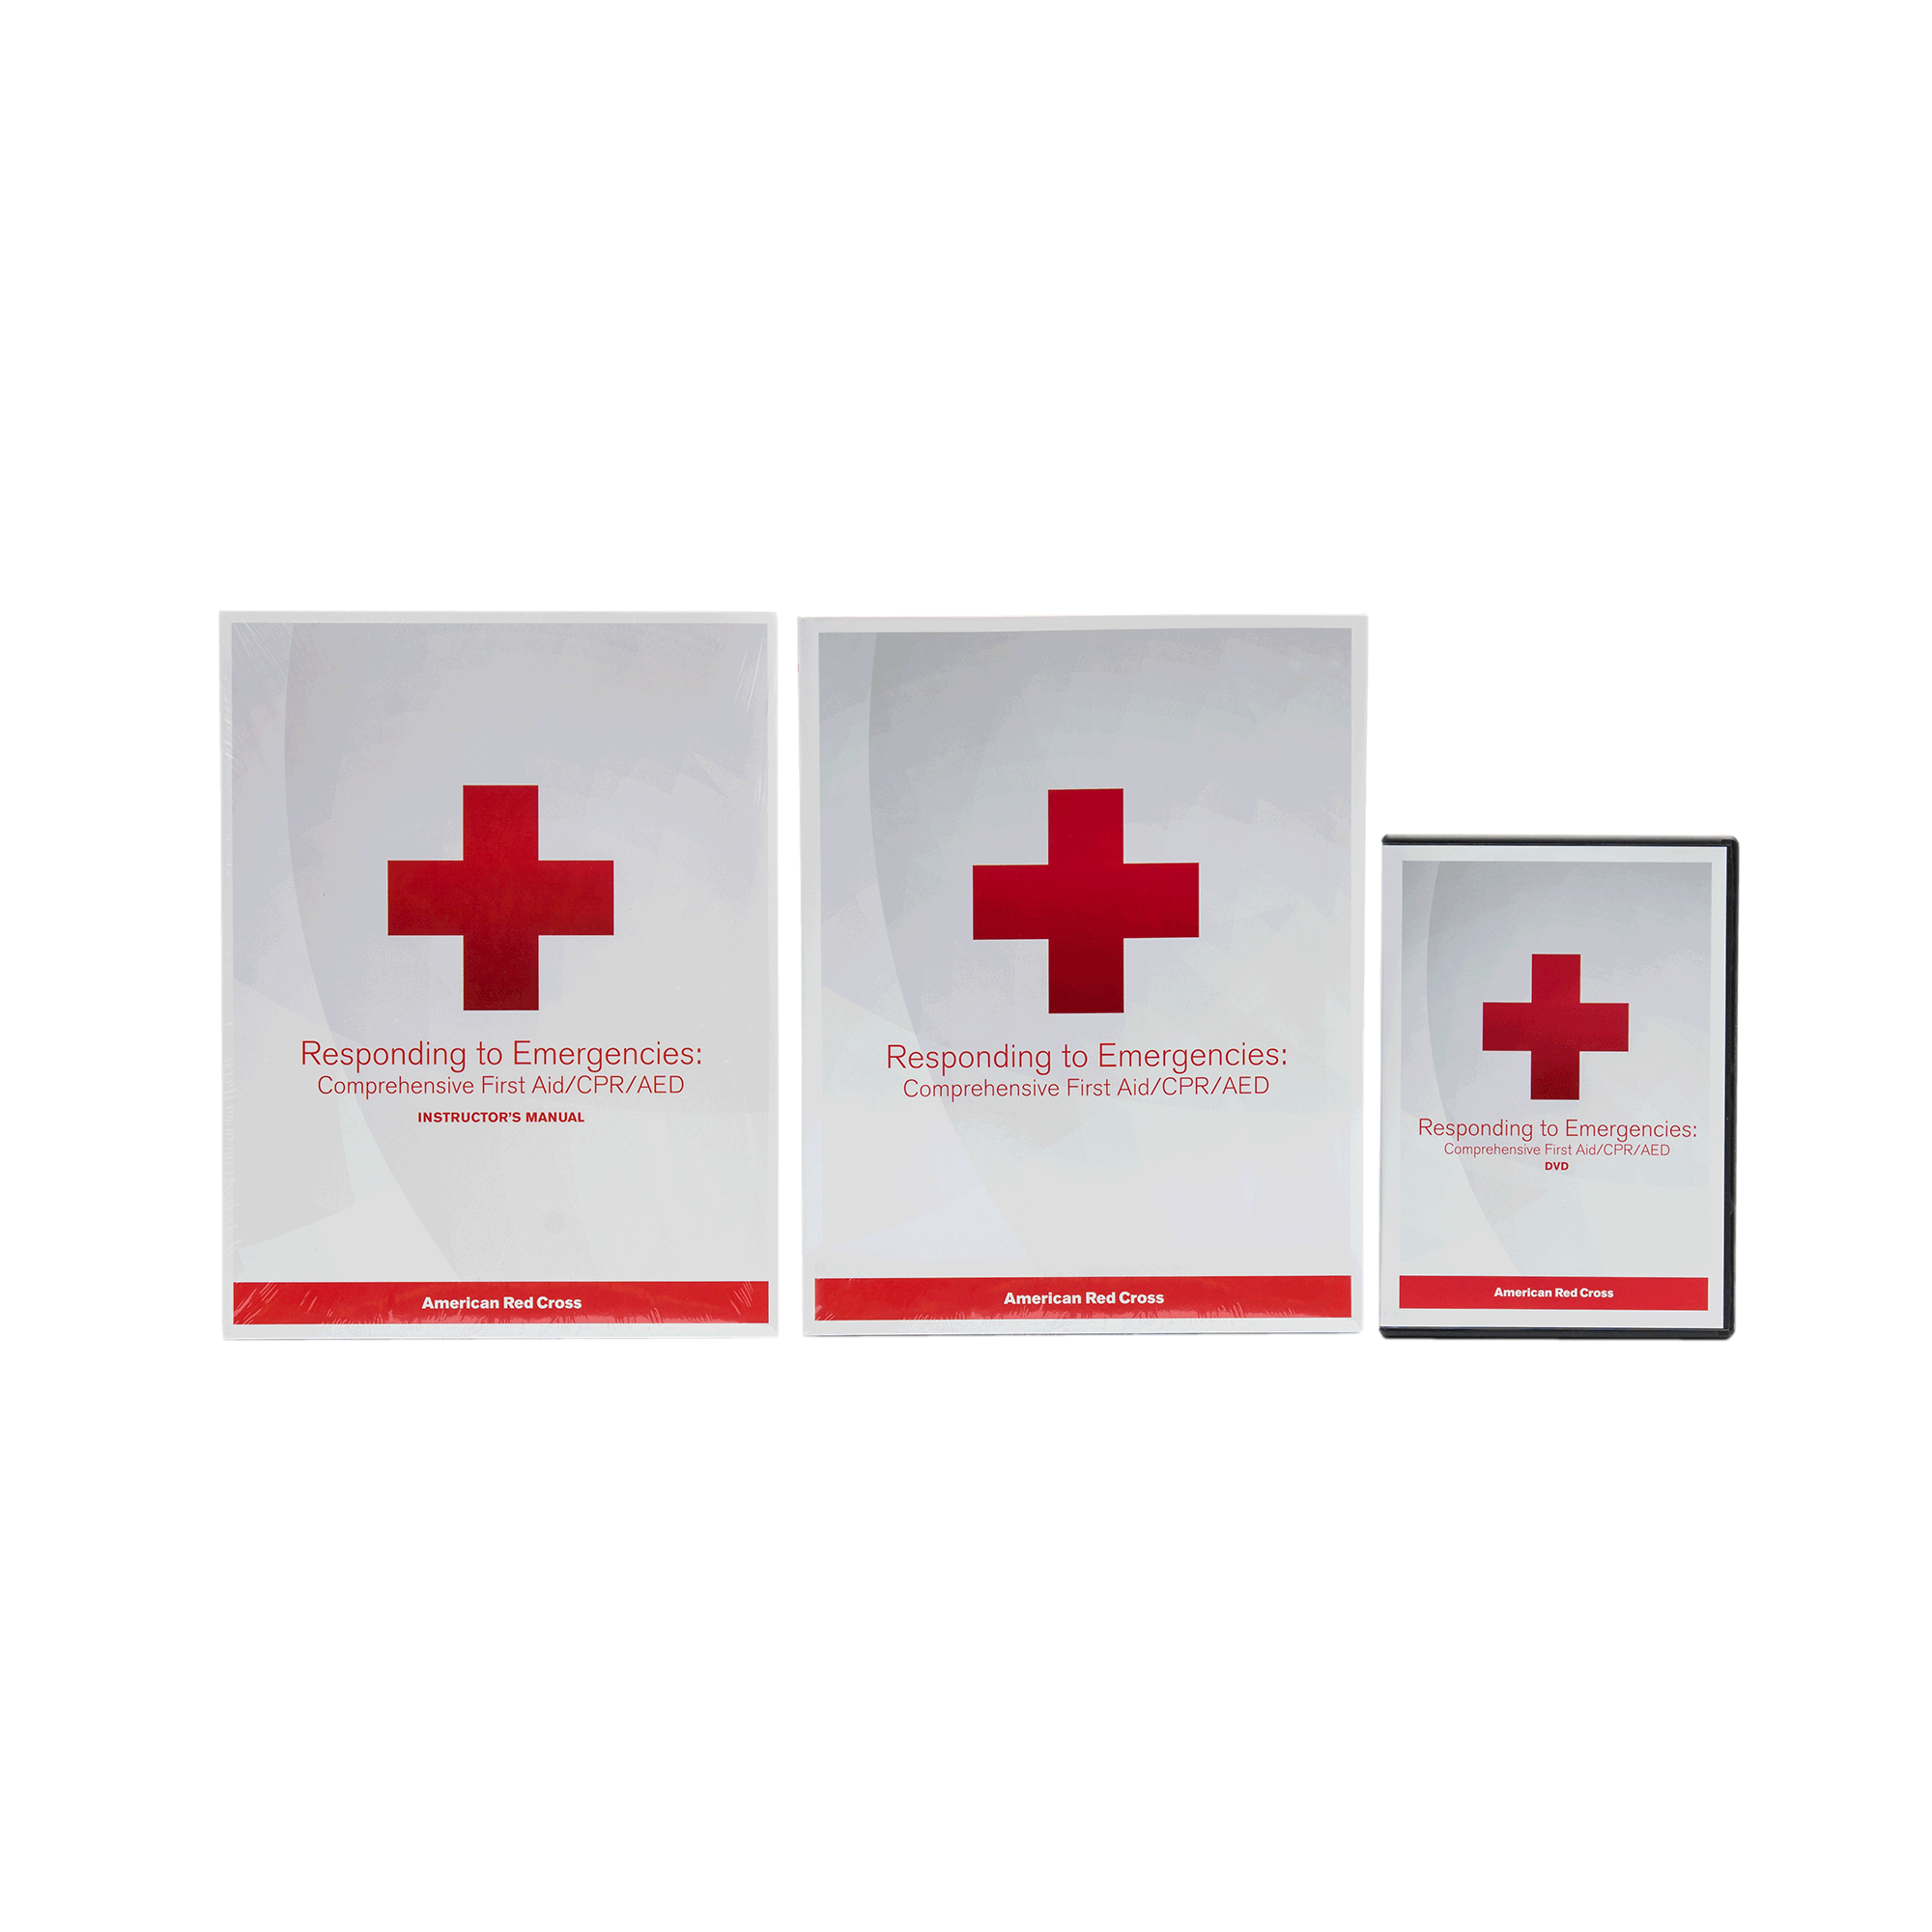 Red Cross Cpr Certification Manual User Guide Manual That Easy To